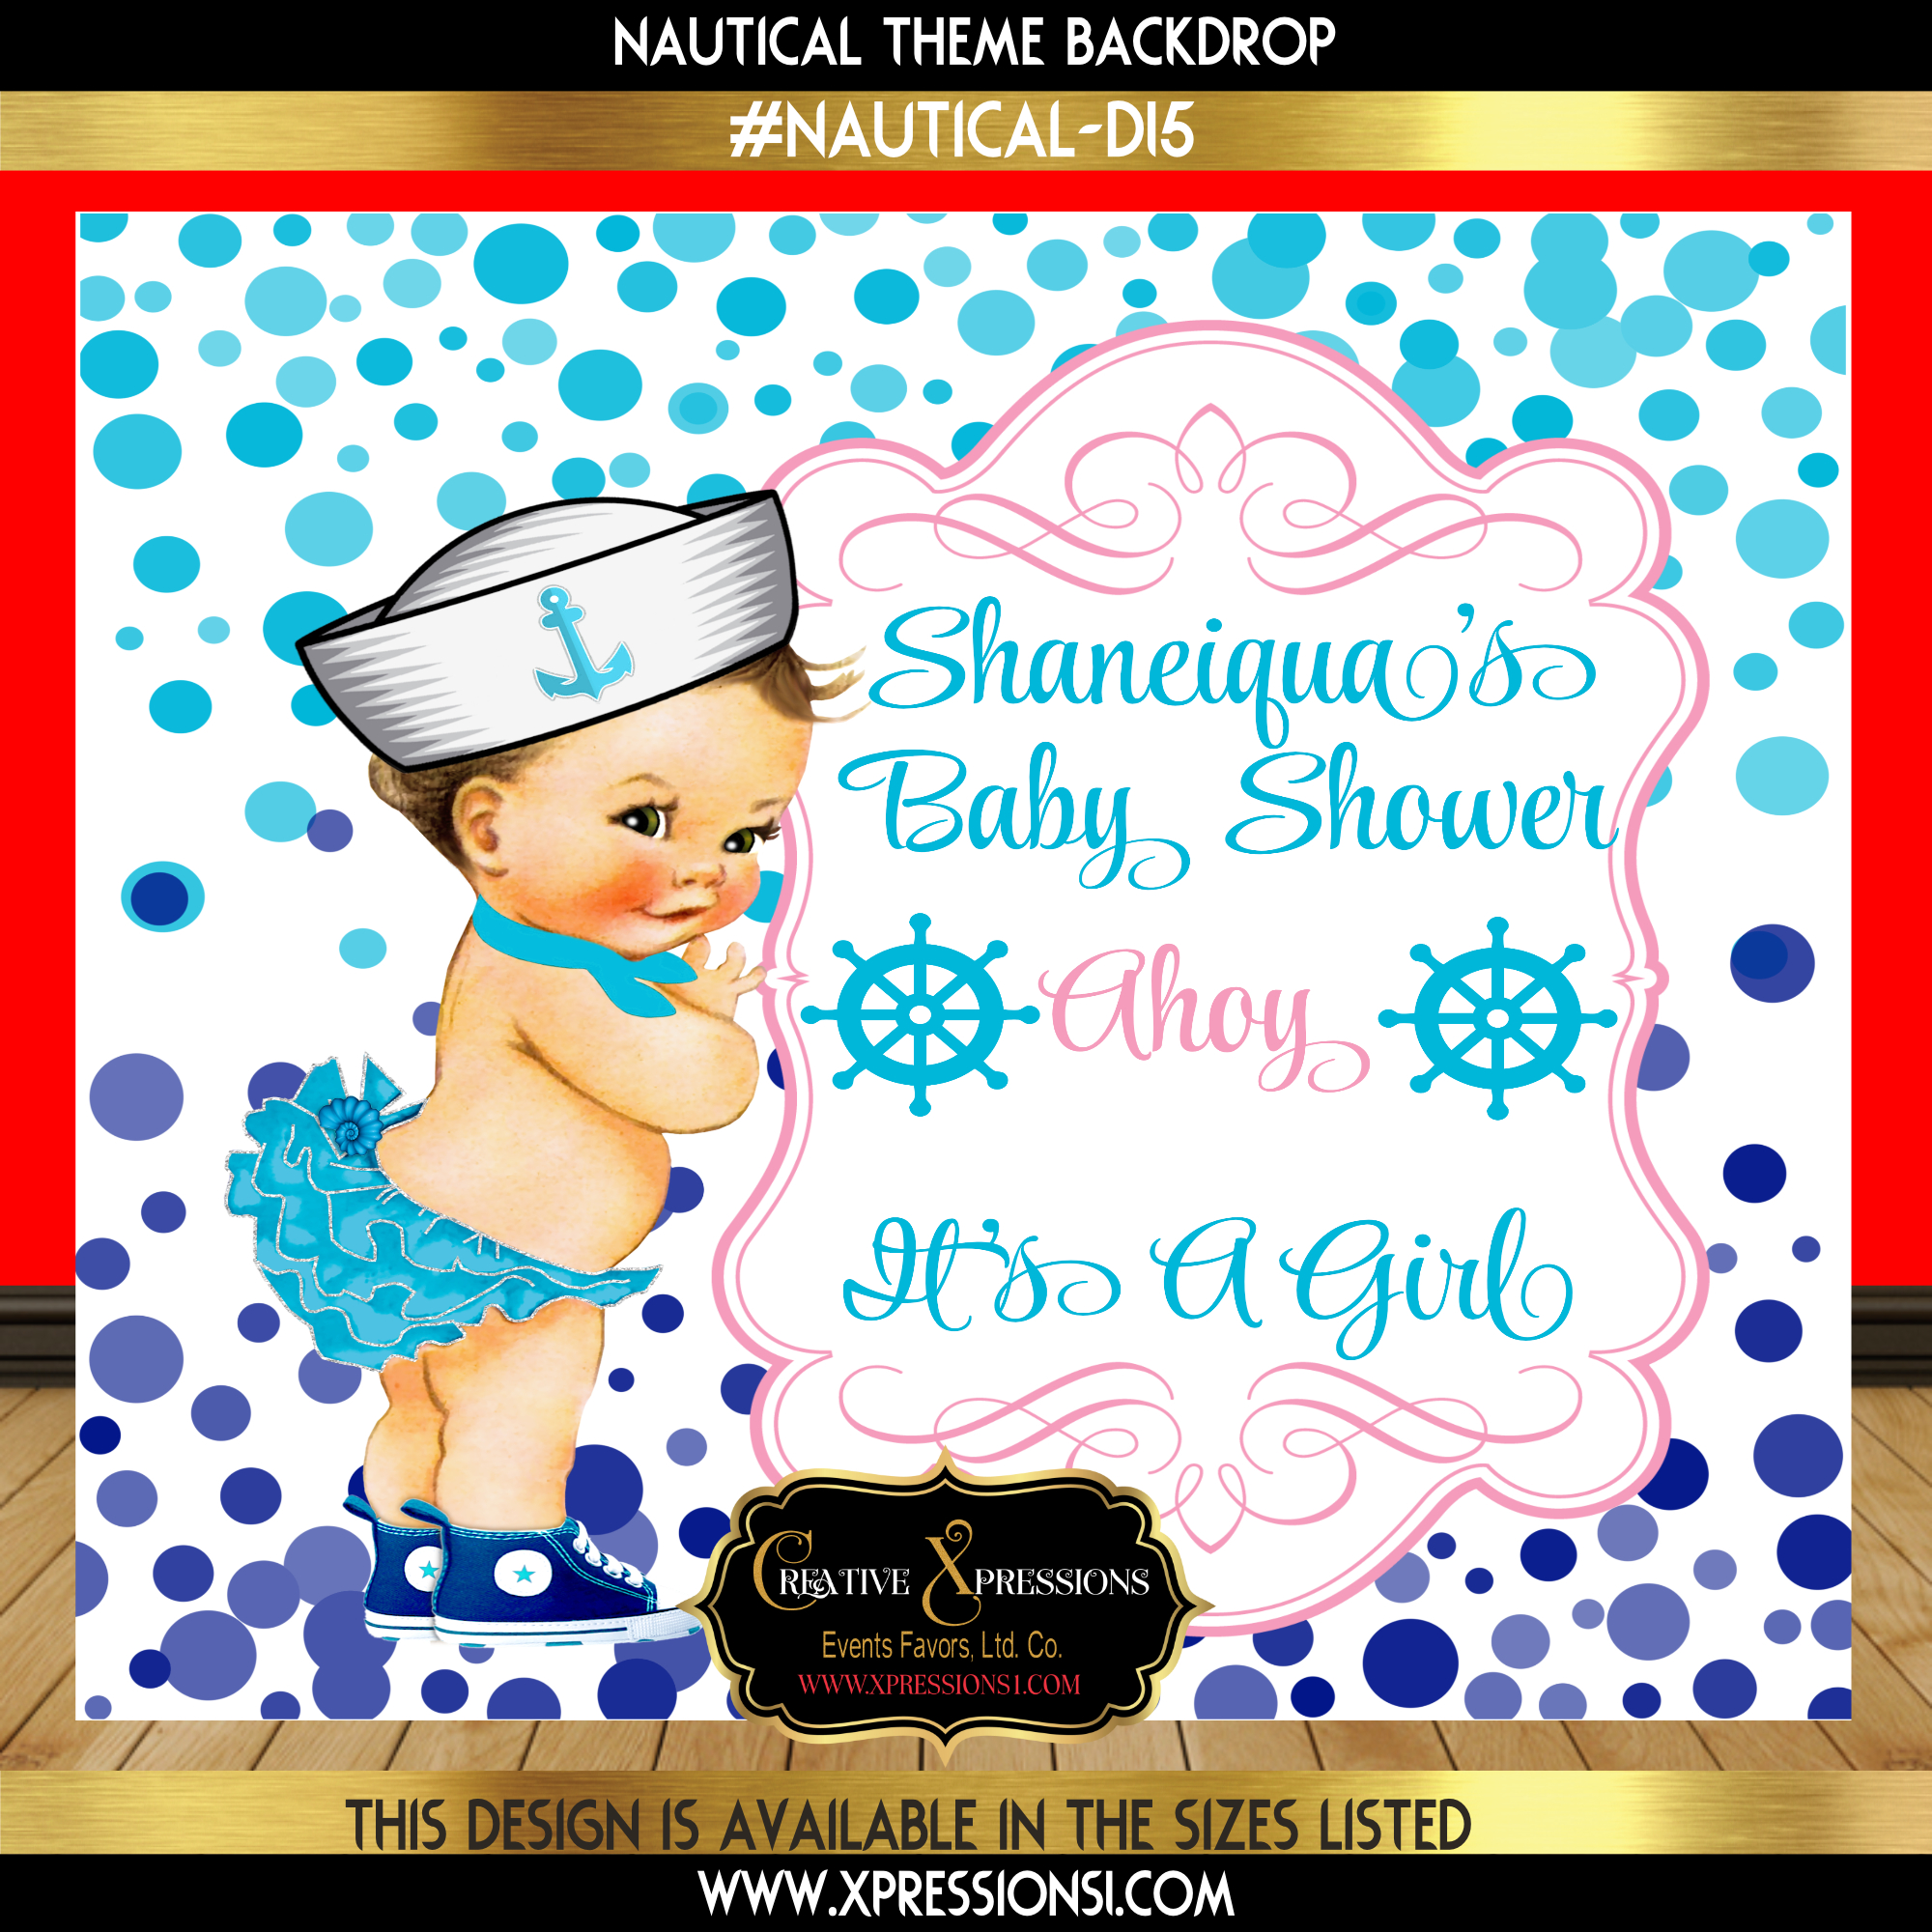 Sailor Girl Baby Shower Backdrop